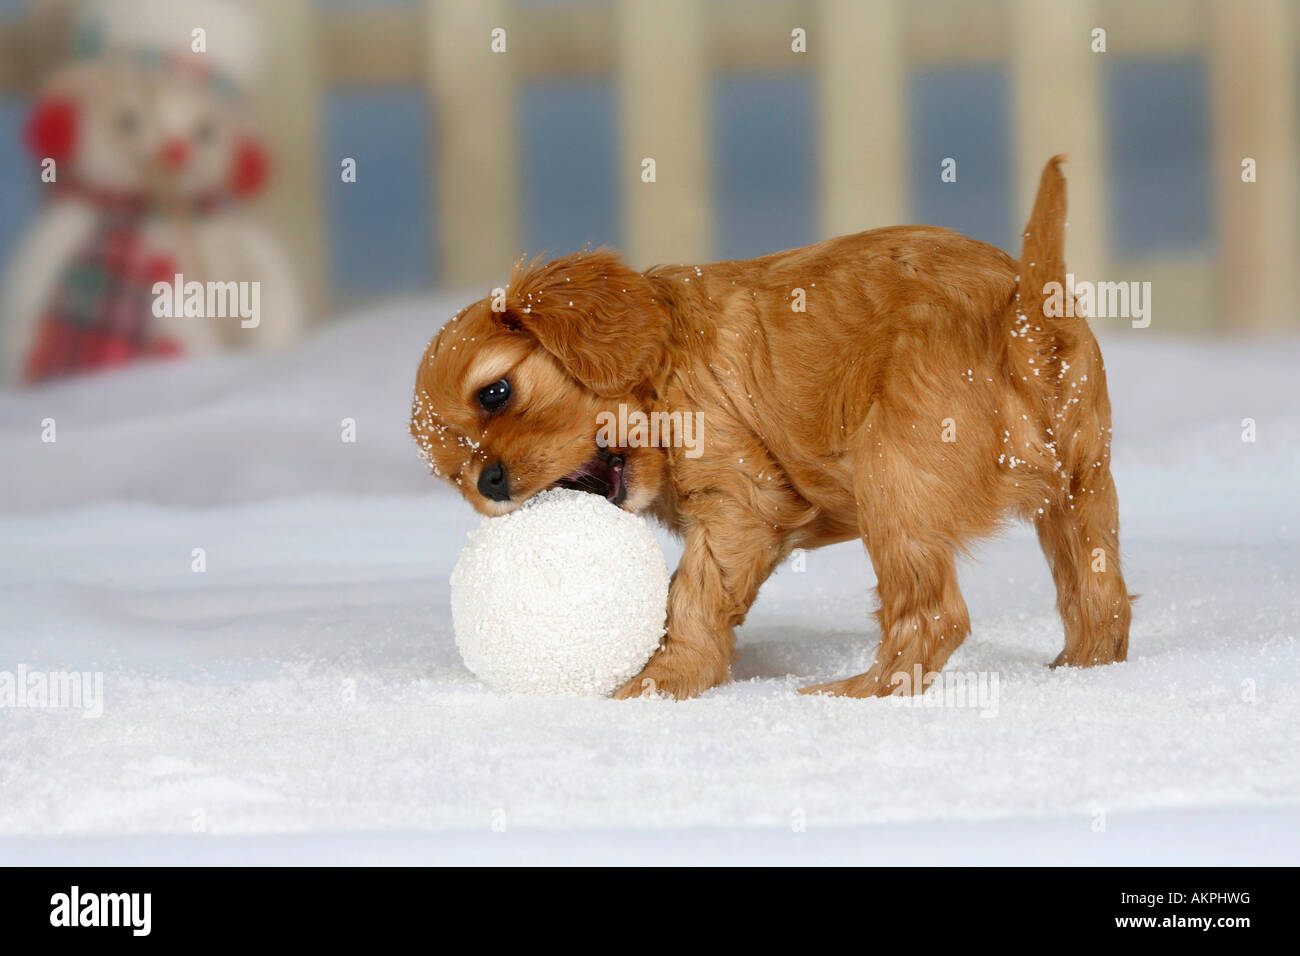 cavalier king charles spaniel puppy ruby 6 weeks gnawing at snowball